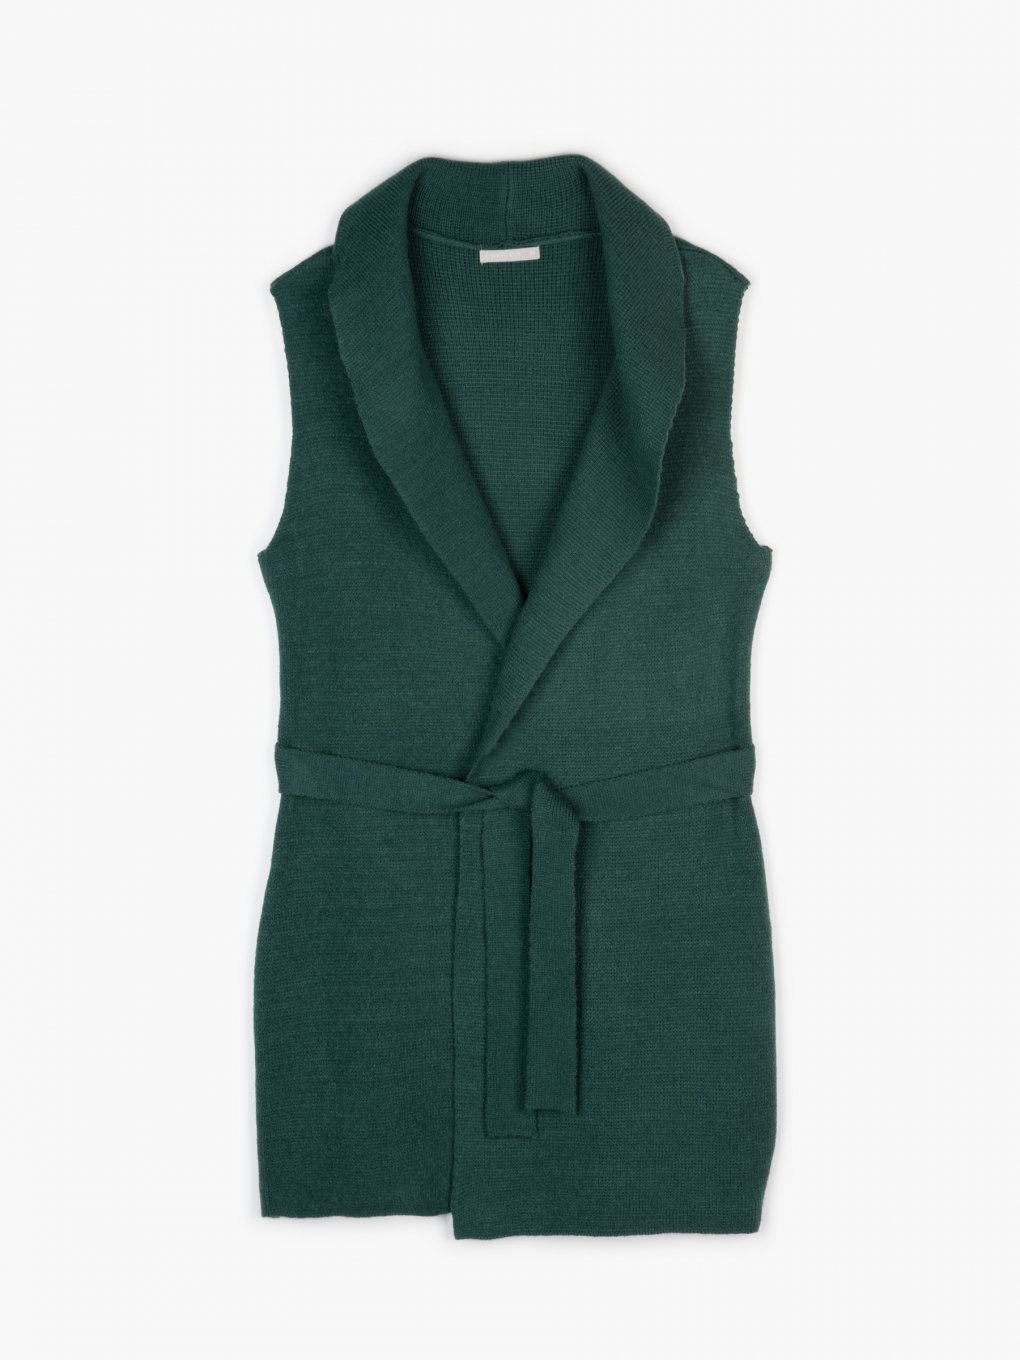 Knitted vest